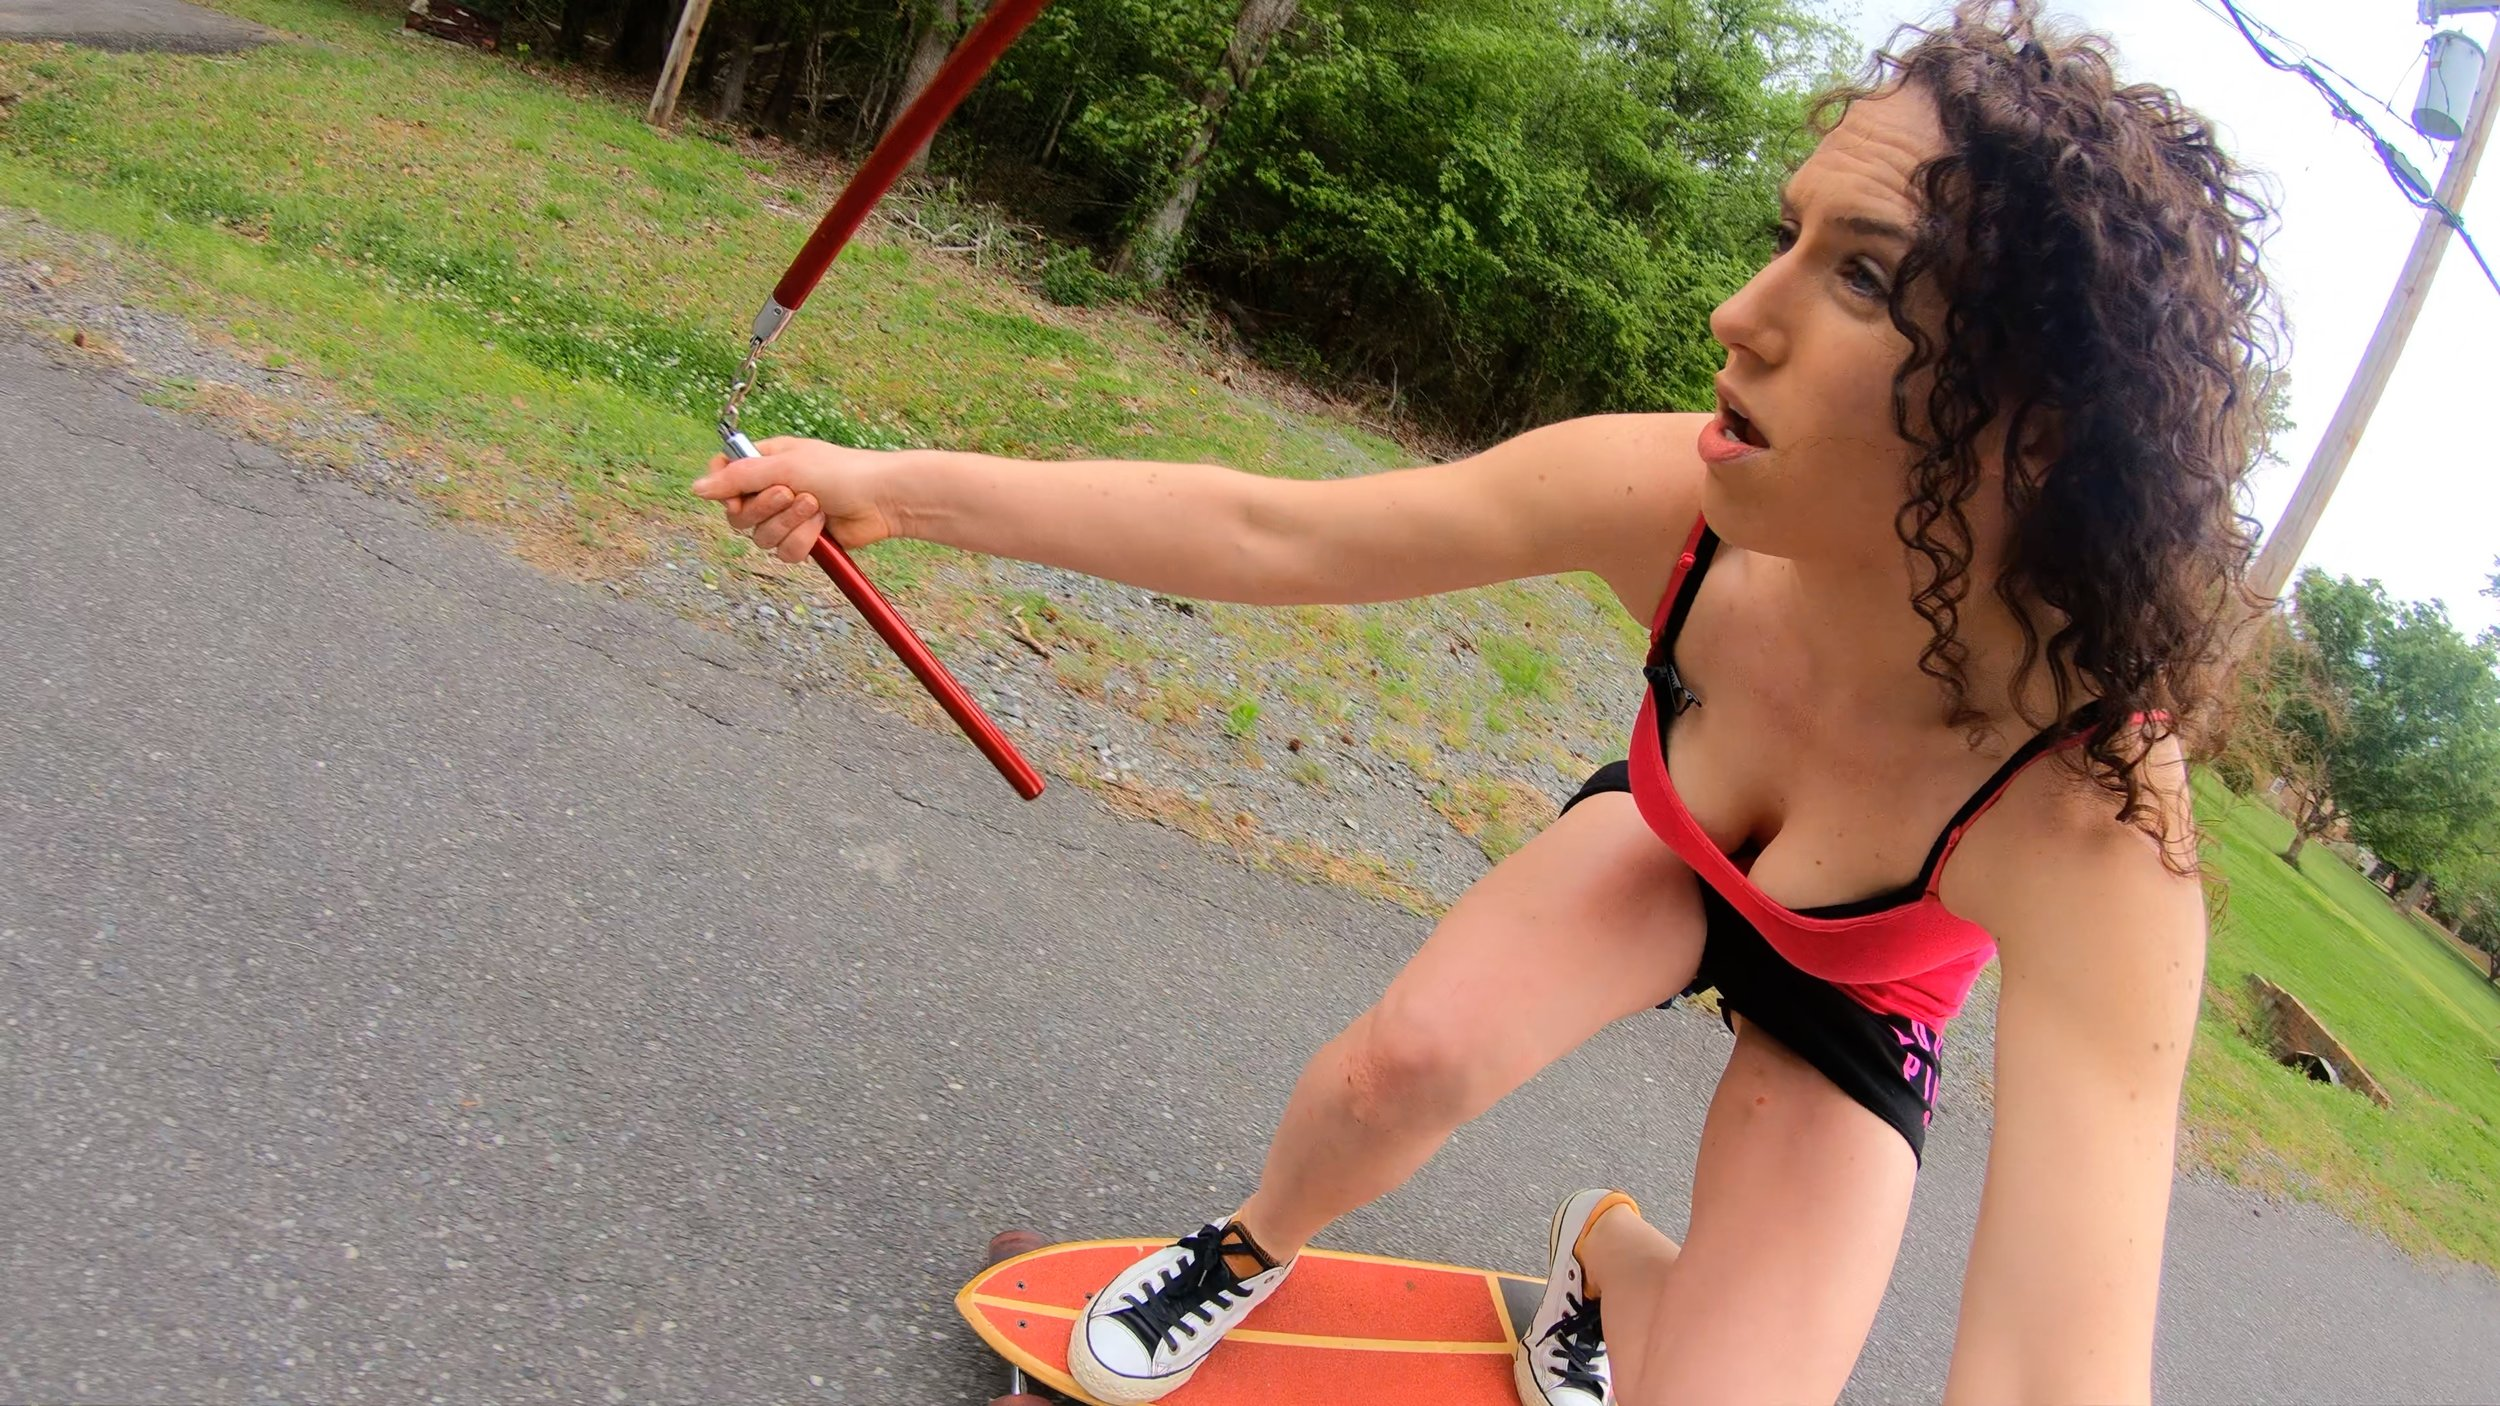 STUNTGIRL - Reality Comedy Action Show - Filmed in 4K / 60fpsVibrant ColorsUnconventional AnglesAll to make the viewer feel they are right there9 Episodes Filmed - Entire 1st Season *Also formatted for 4K / 30fps and 1080p / 30fpsCURRENTLY SEEKING DISTRIBUTION